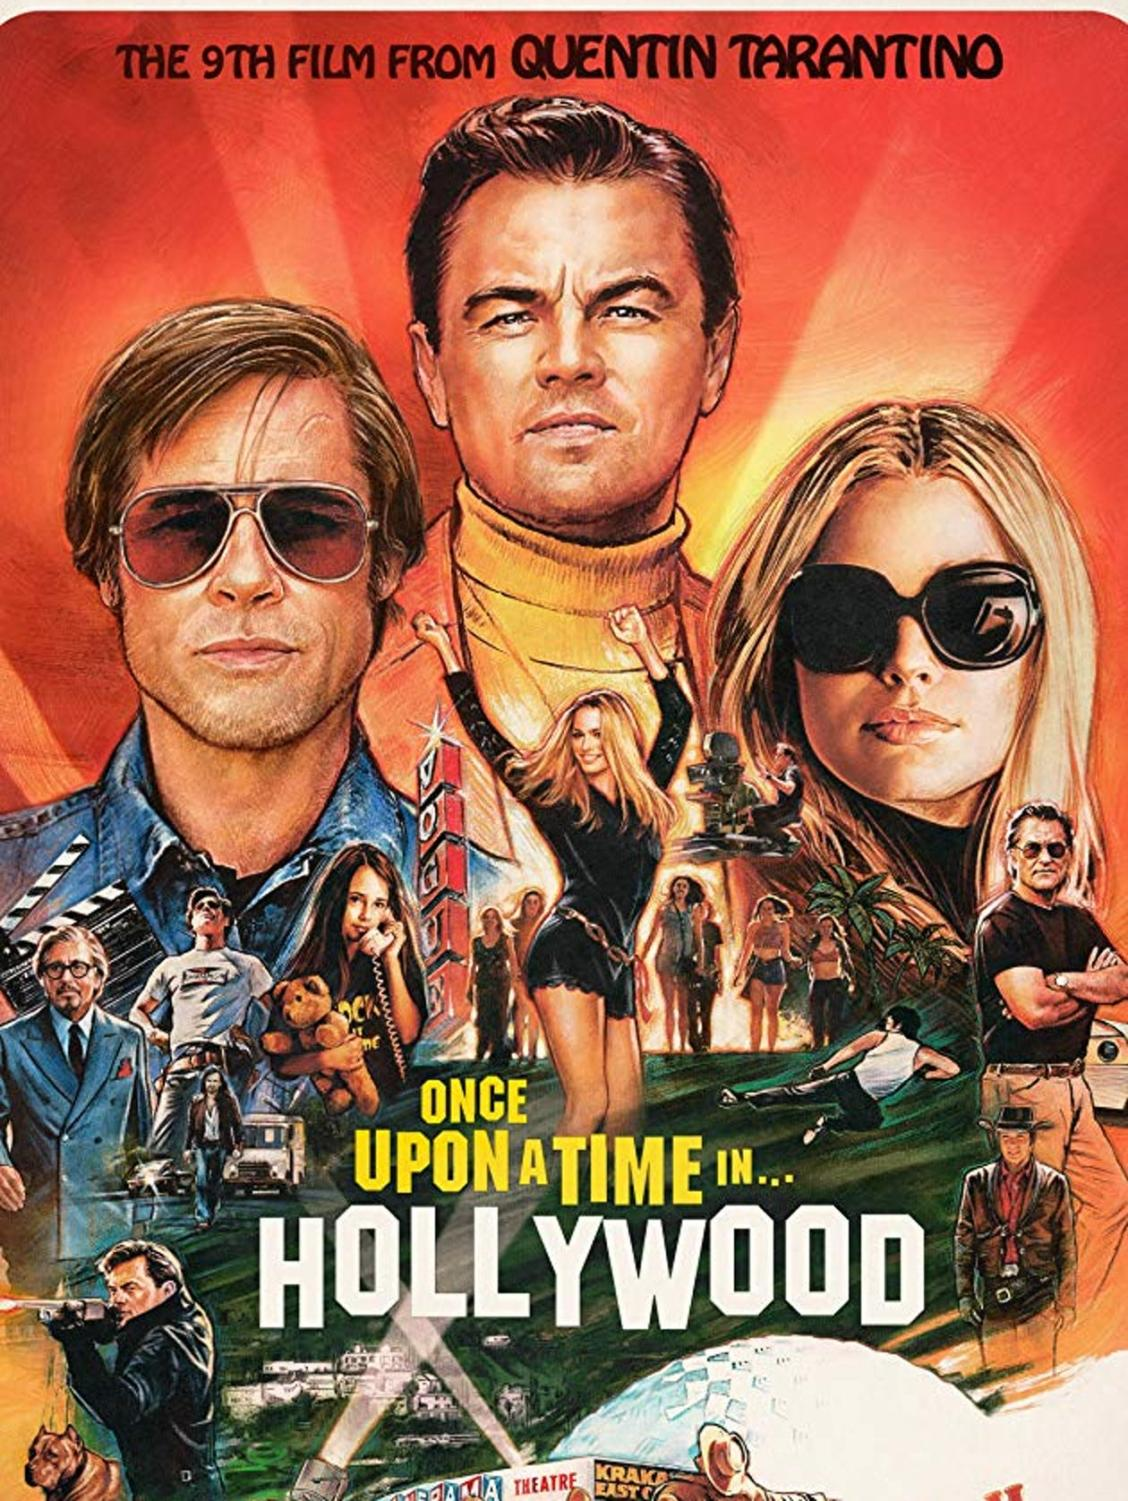 Movie poster for Once Upon a Time in Hollywood.